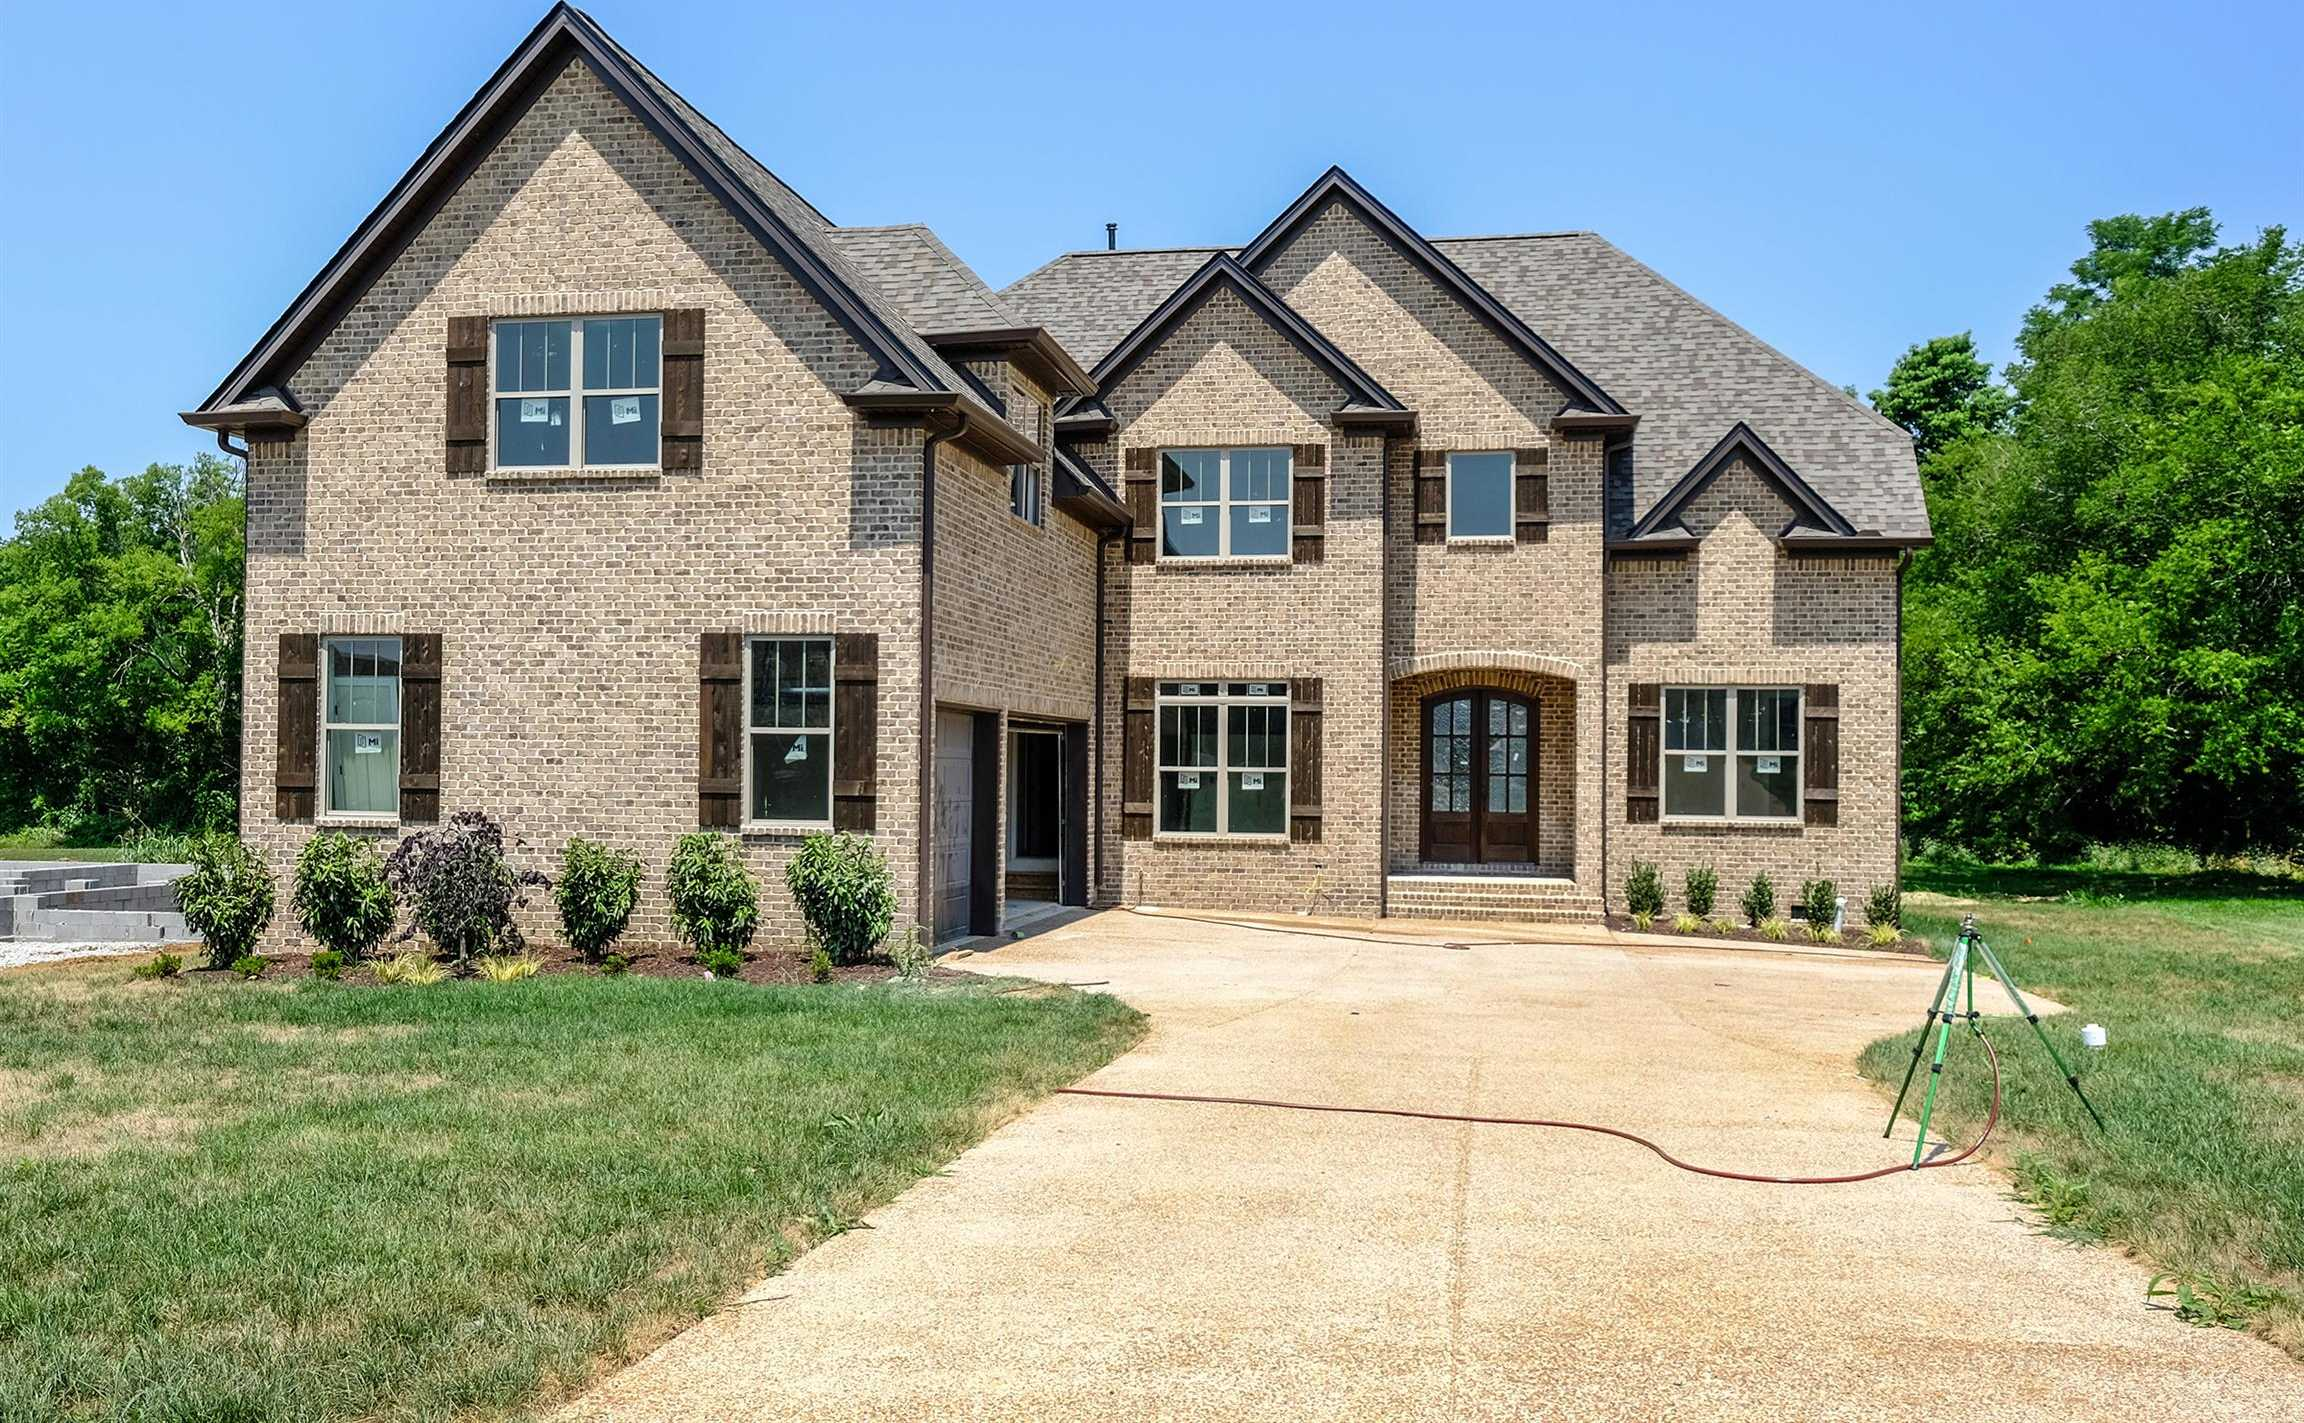 $647,850 - 5Br/4Ba -  for Sale in Autumn Ridge, Spring Hill